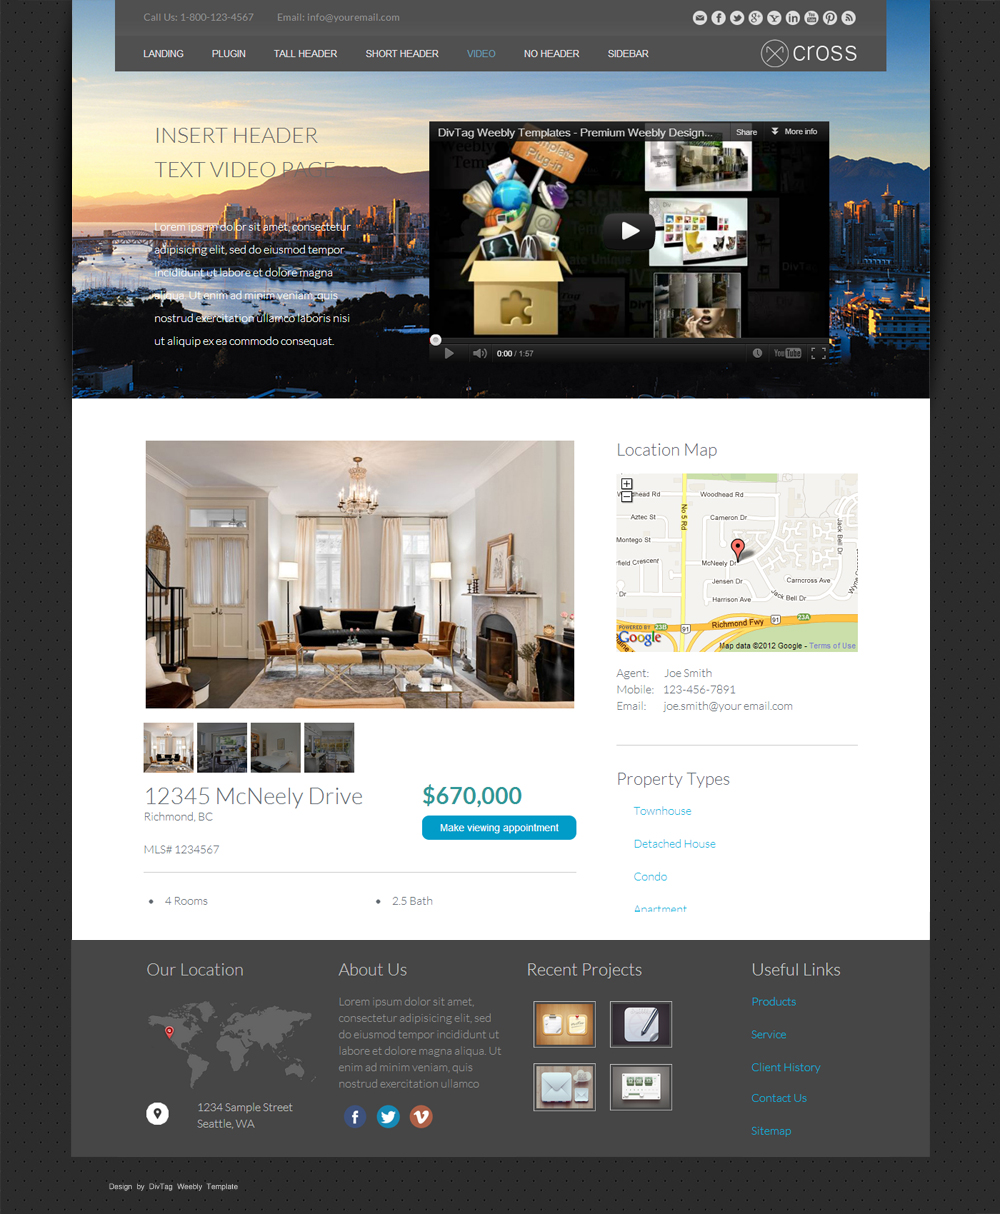 Weebly templates weebly themes cross for Free weebly themes and templates